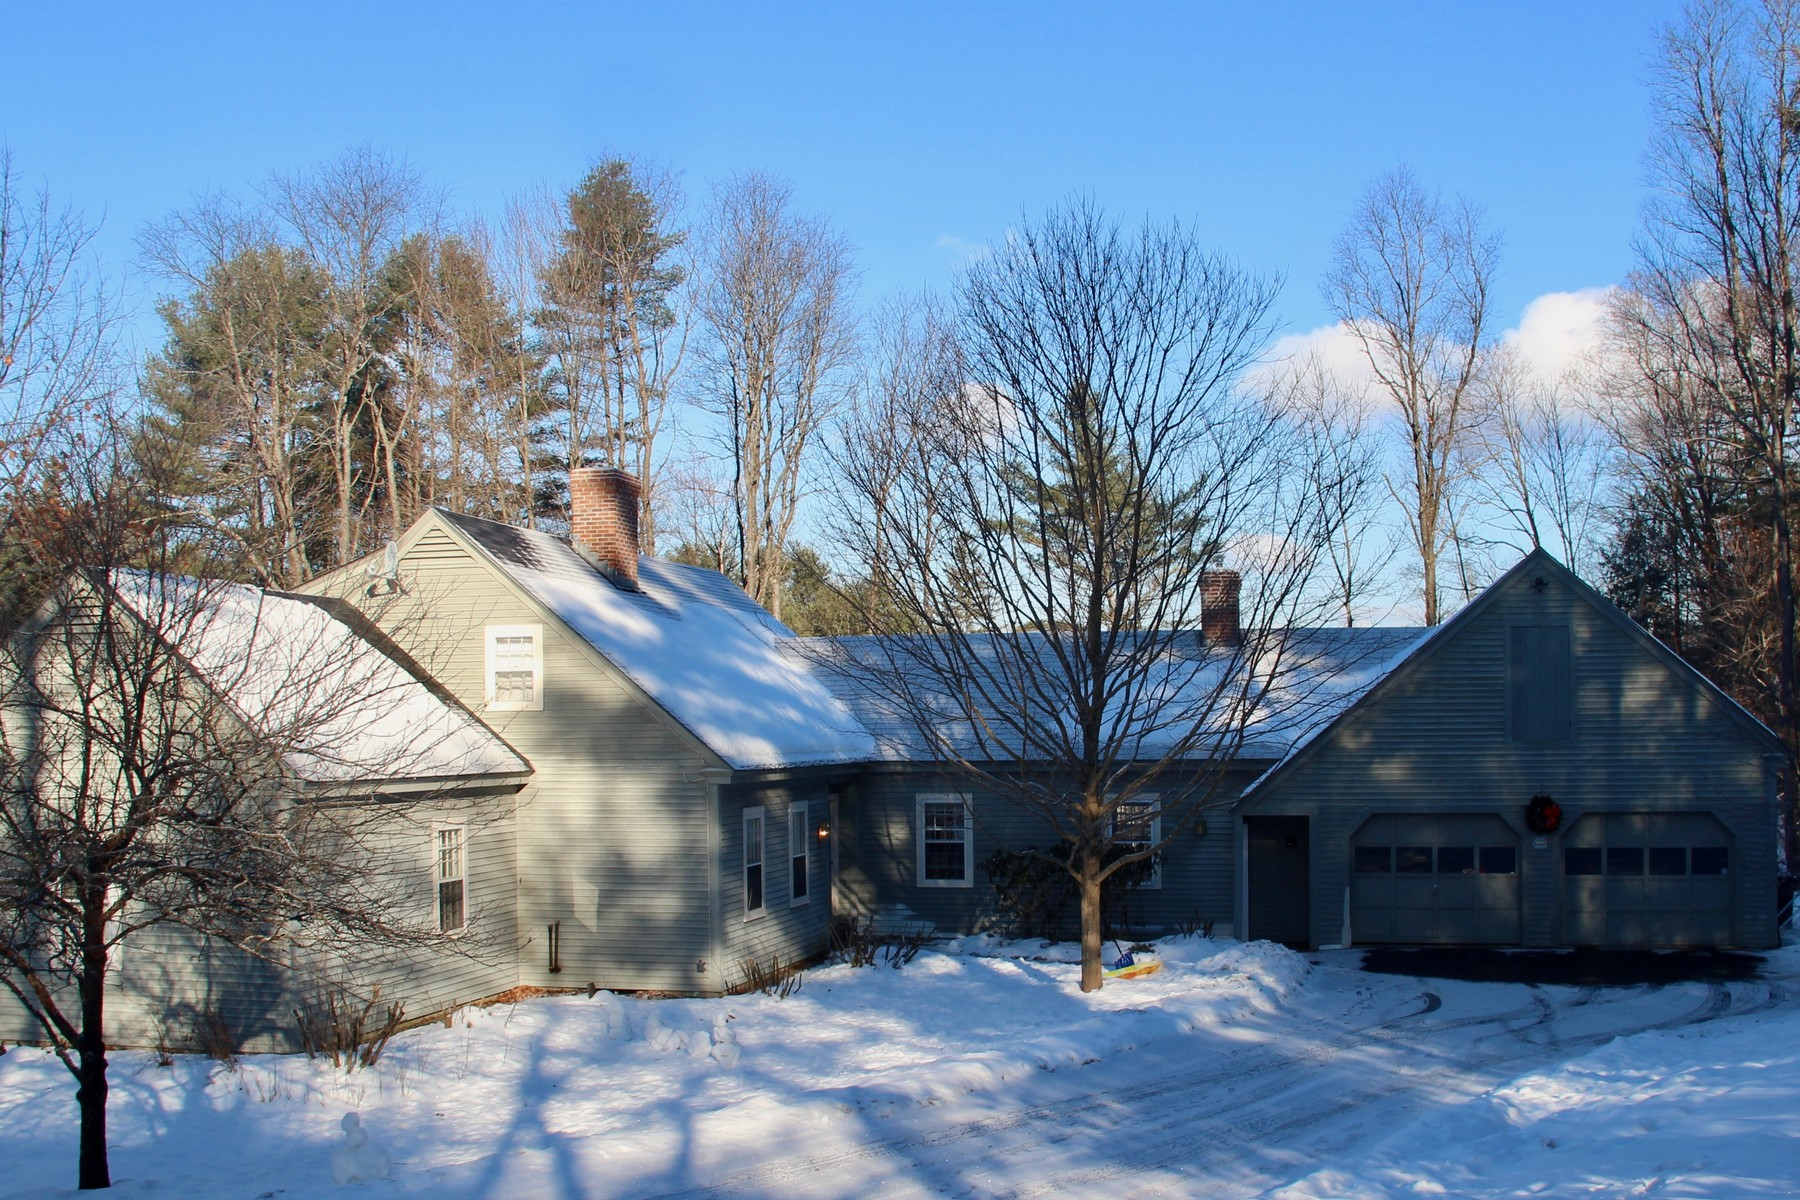 Single Family Home for Sale at 1 Crestwood, Hanover Hanover, New Hampshire, 03755 United States